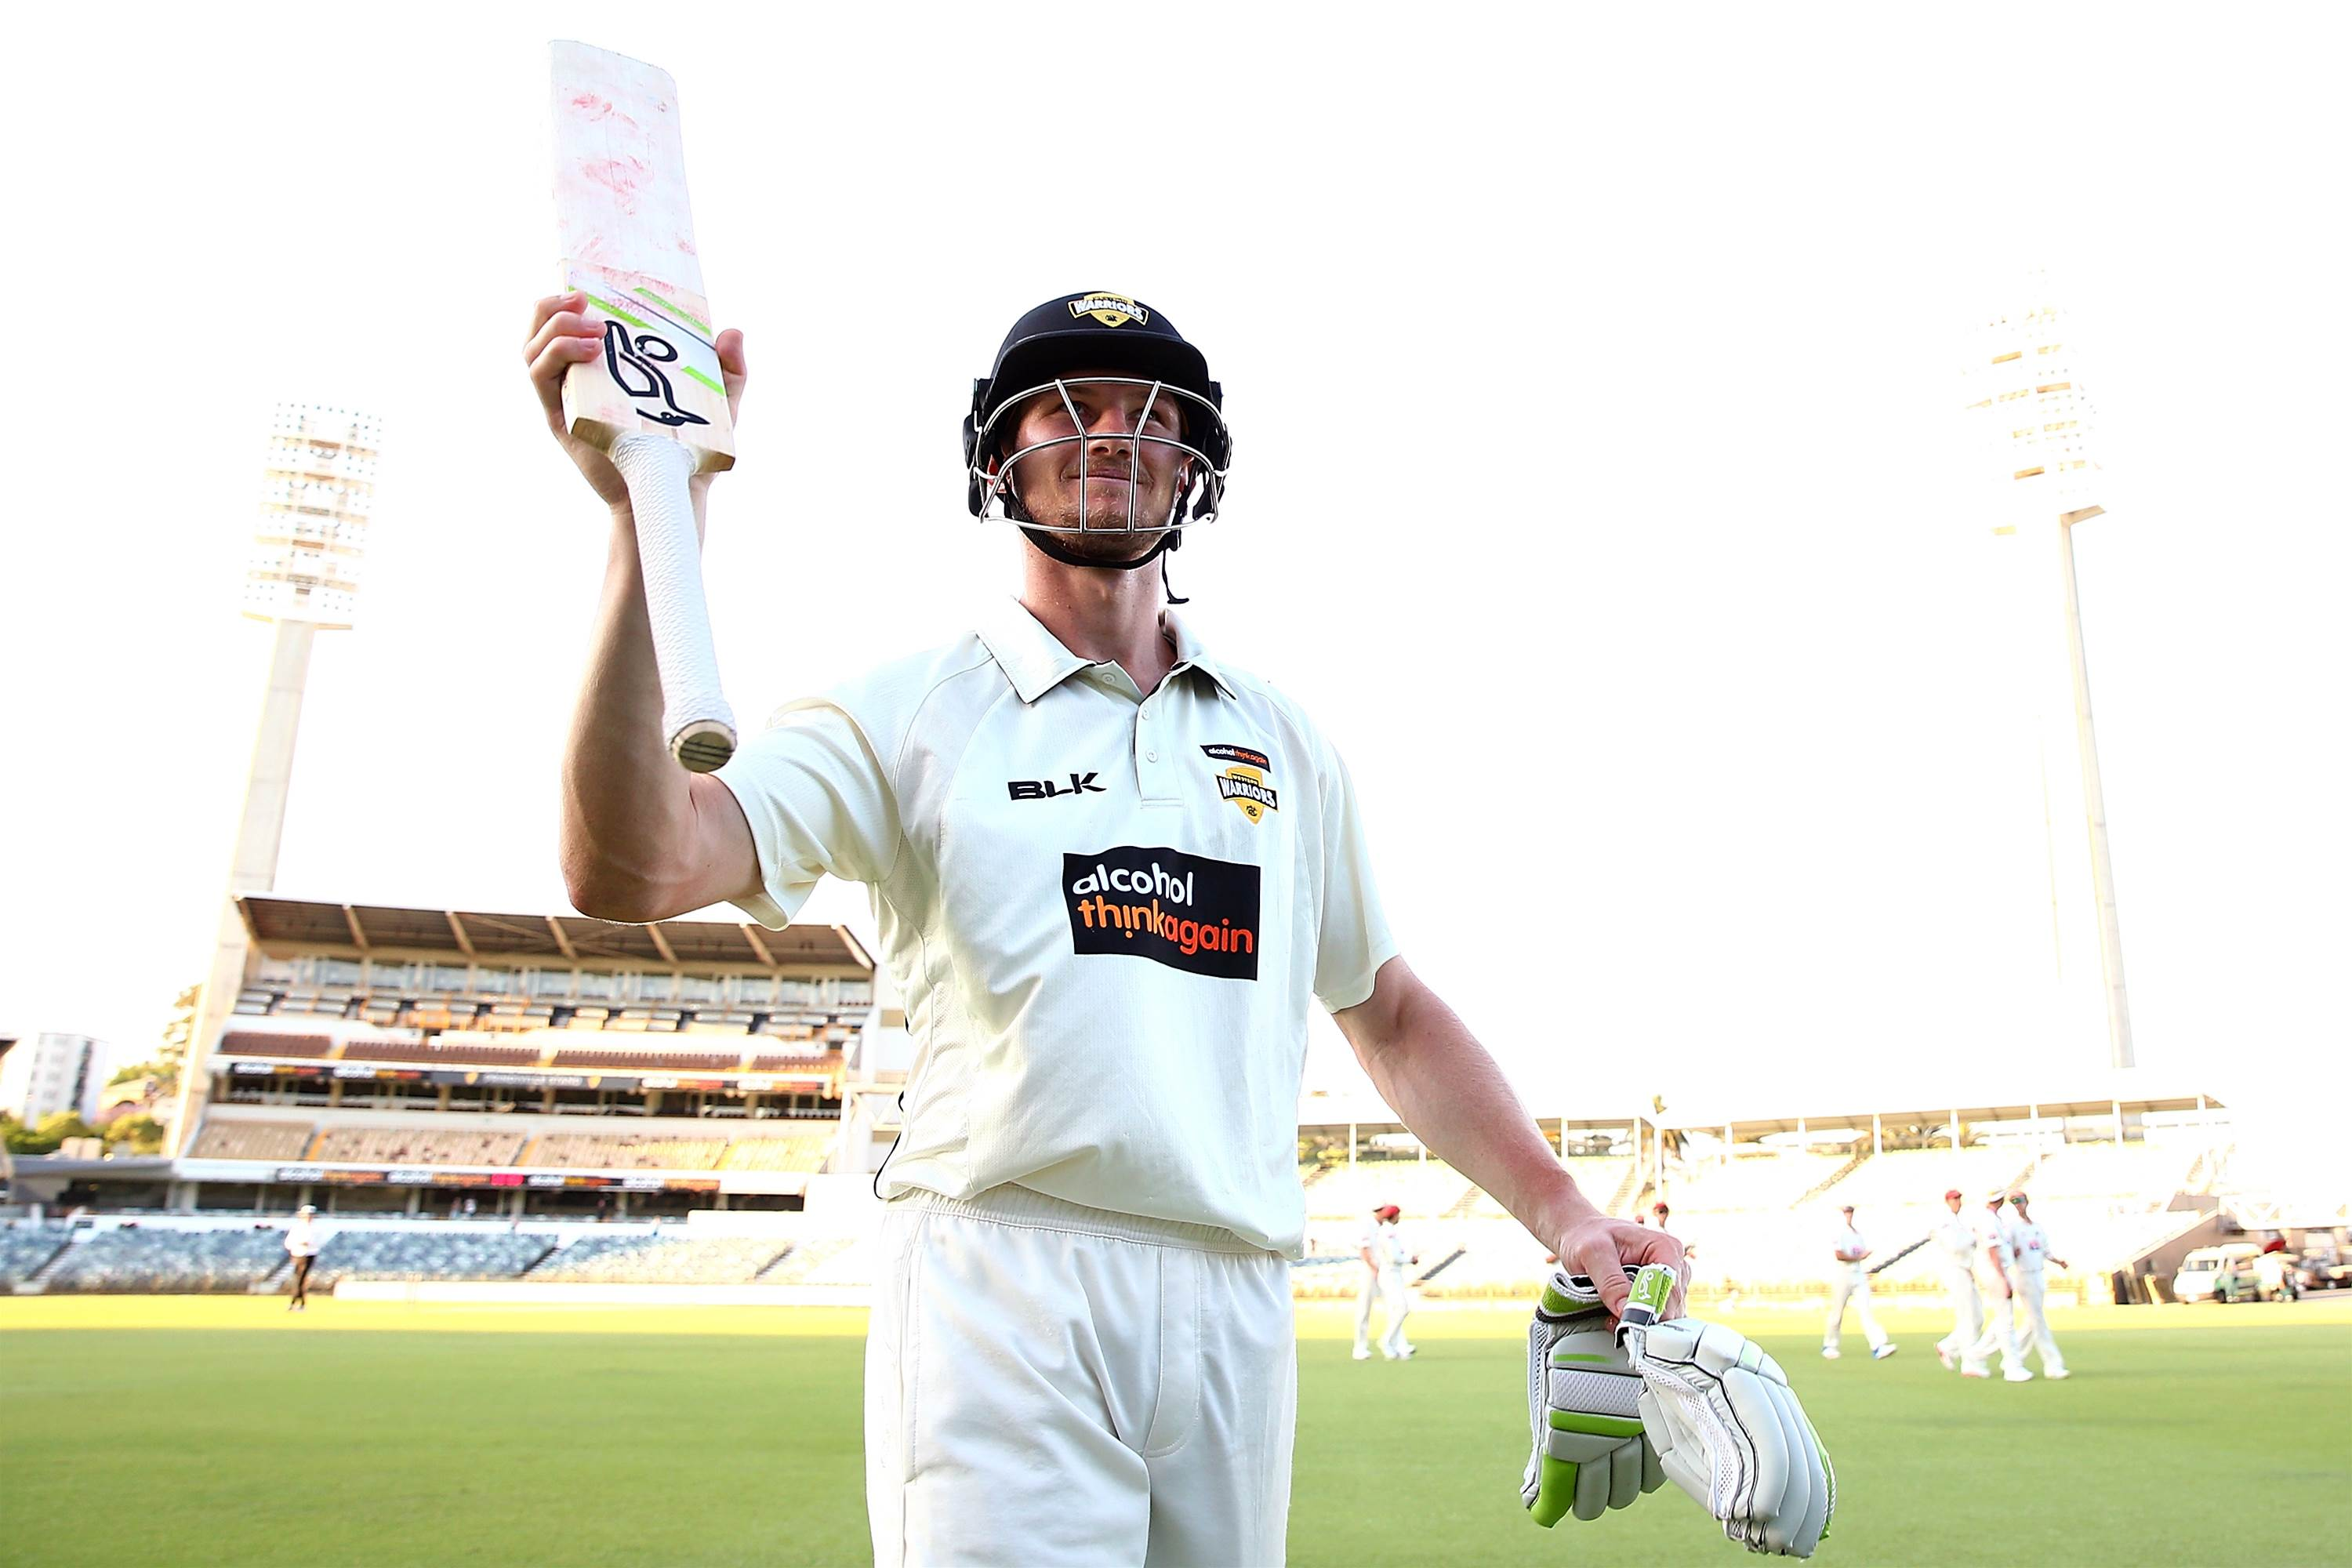 Bancroft has runs in the bank for Brisbane